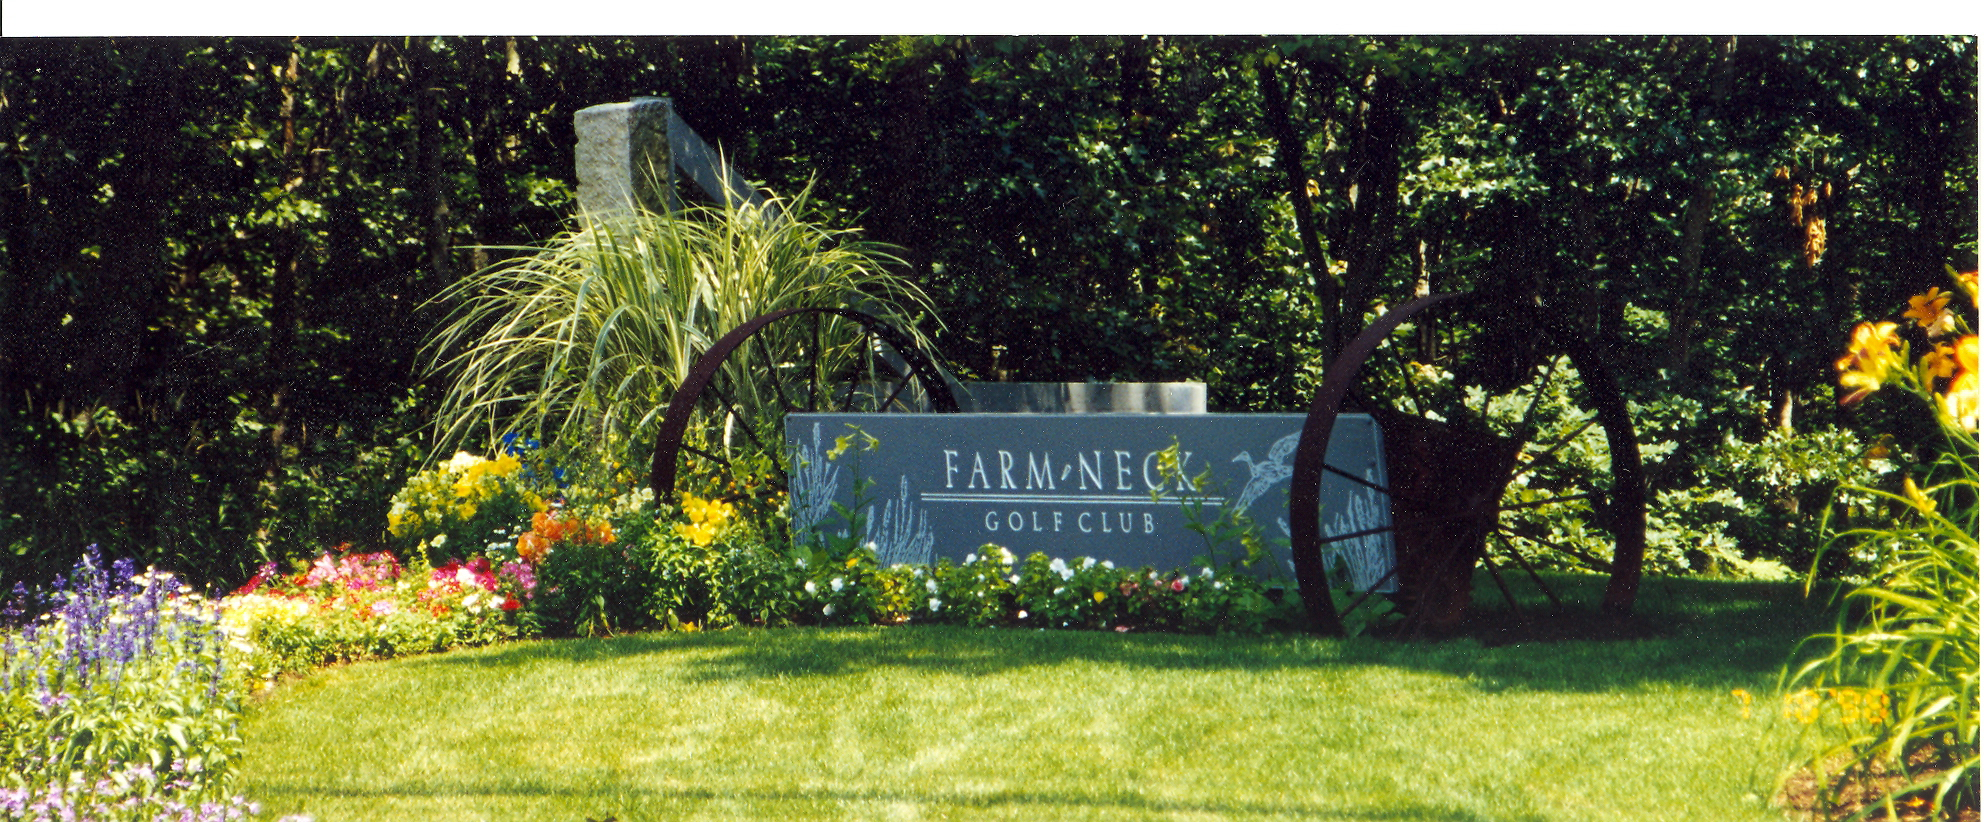 Residence on farm Neck Golf Course - Recognizing nature